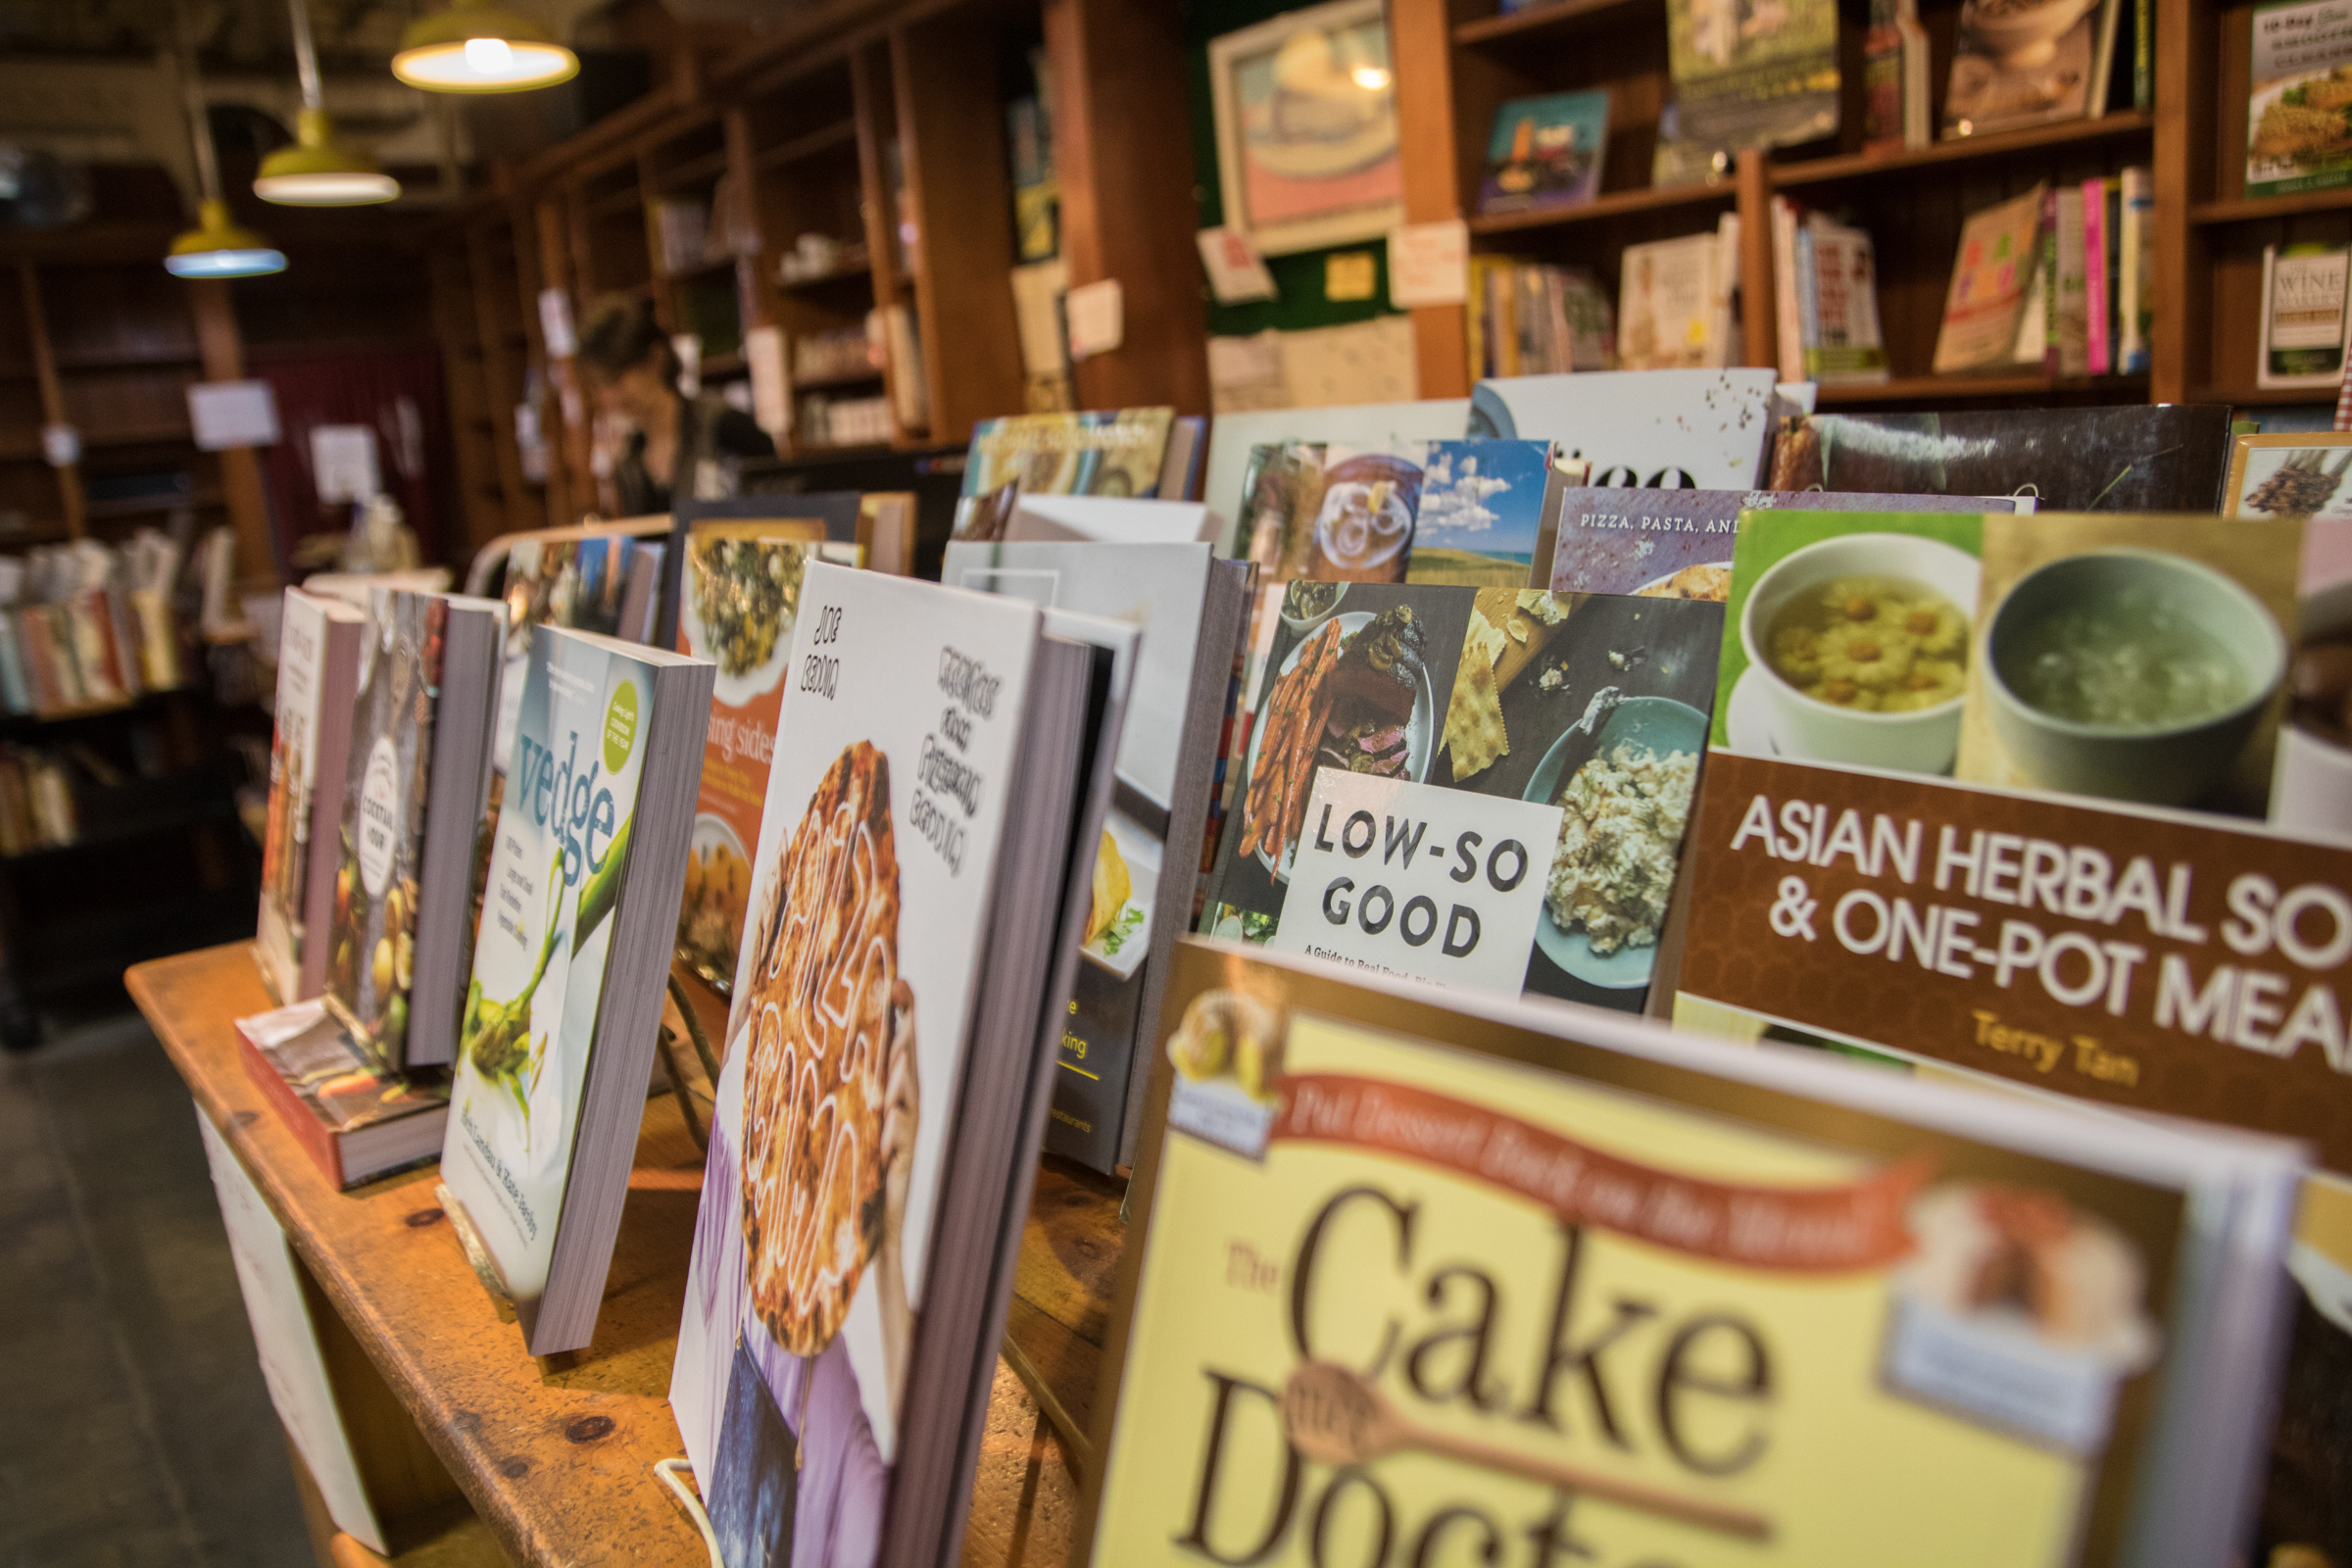 Cookbooks sit on display in The Cook Book Stall in the Reading Terminal Market.